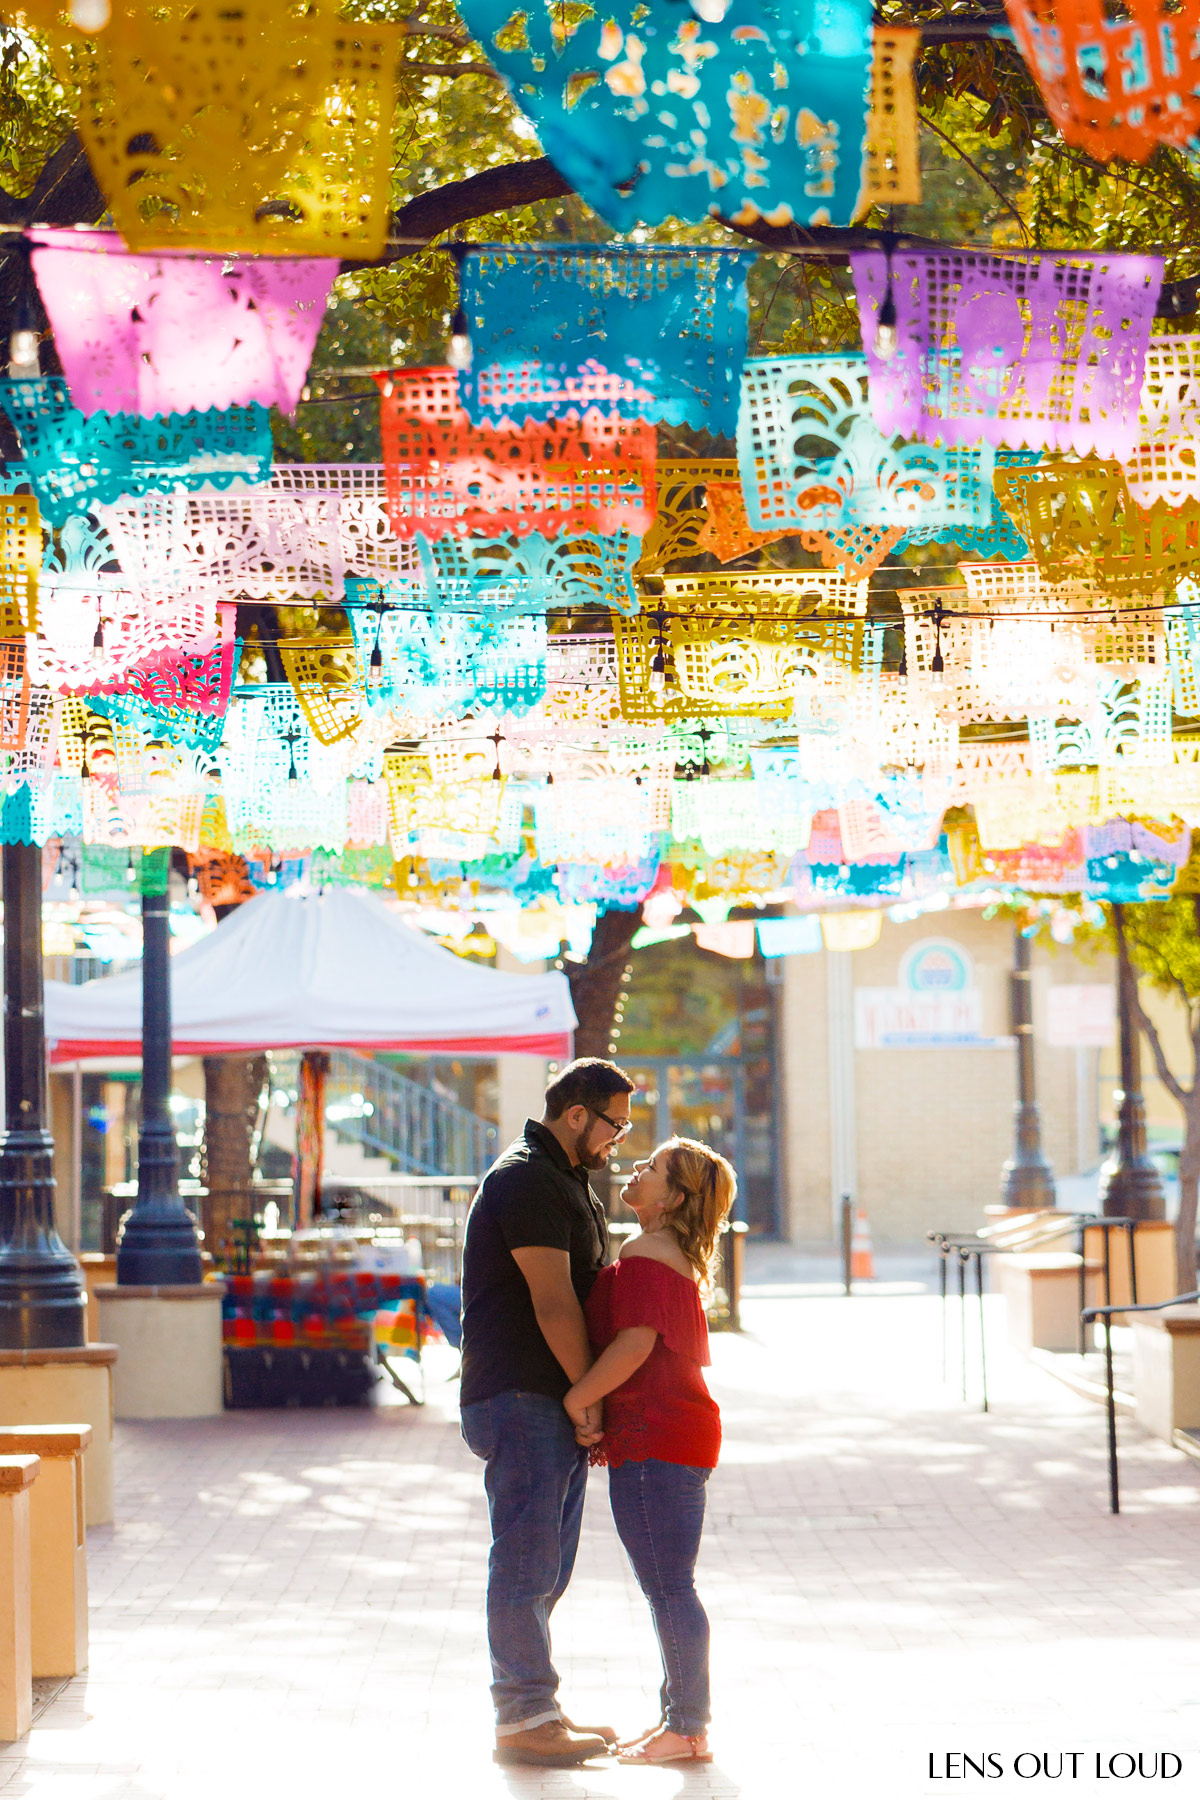 Outdoor Engagement Photo Locations in San Antonio, TX